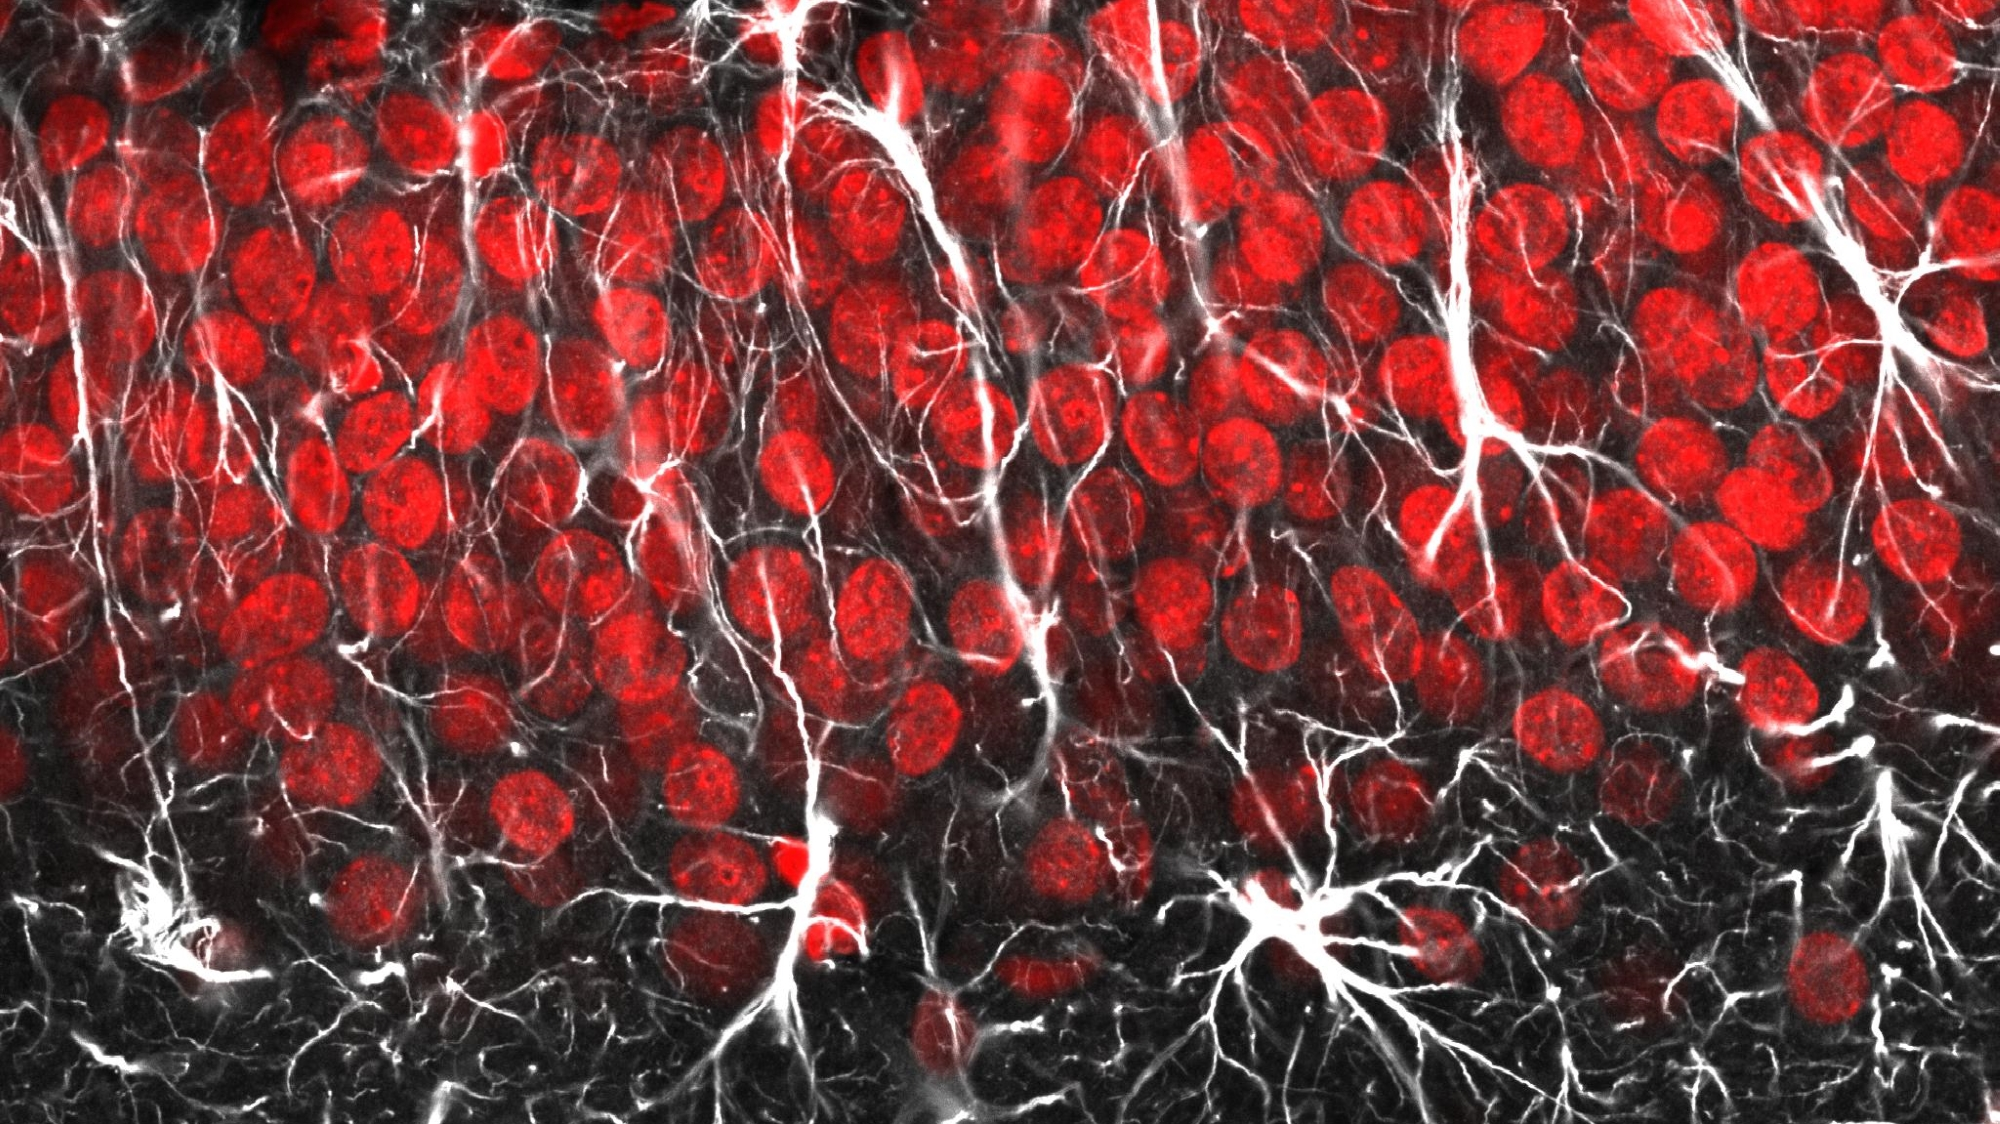 Astrocytes and radial glia by Jason Snyder, CC BY 2.0